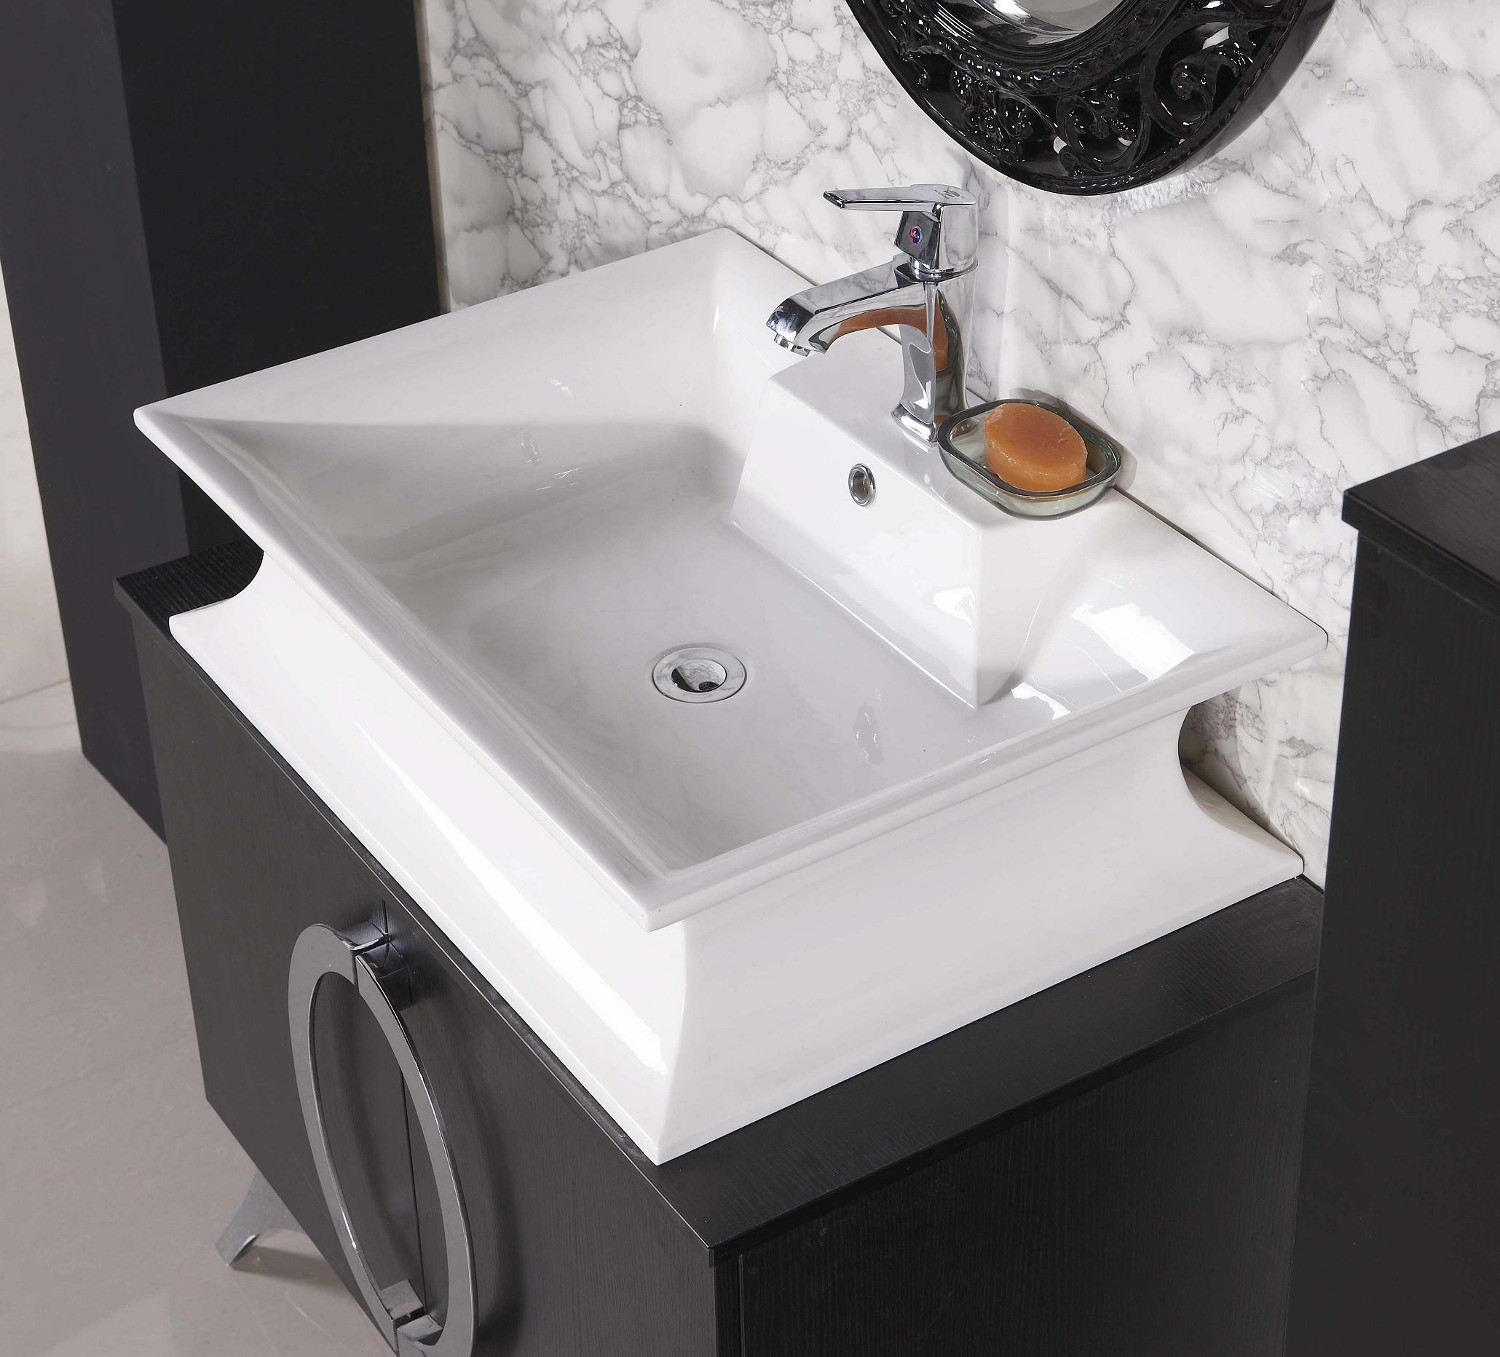 Modern bathroom vanity paris iii for The bathroom designer